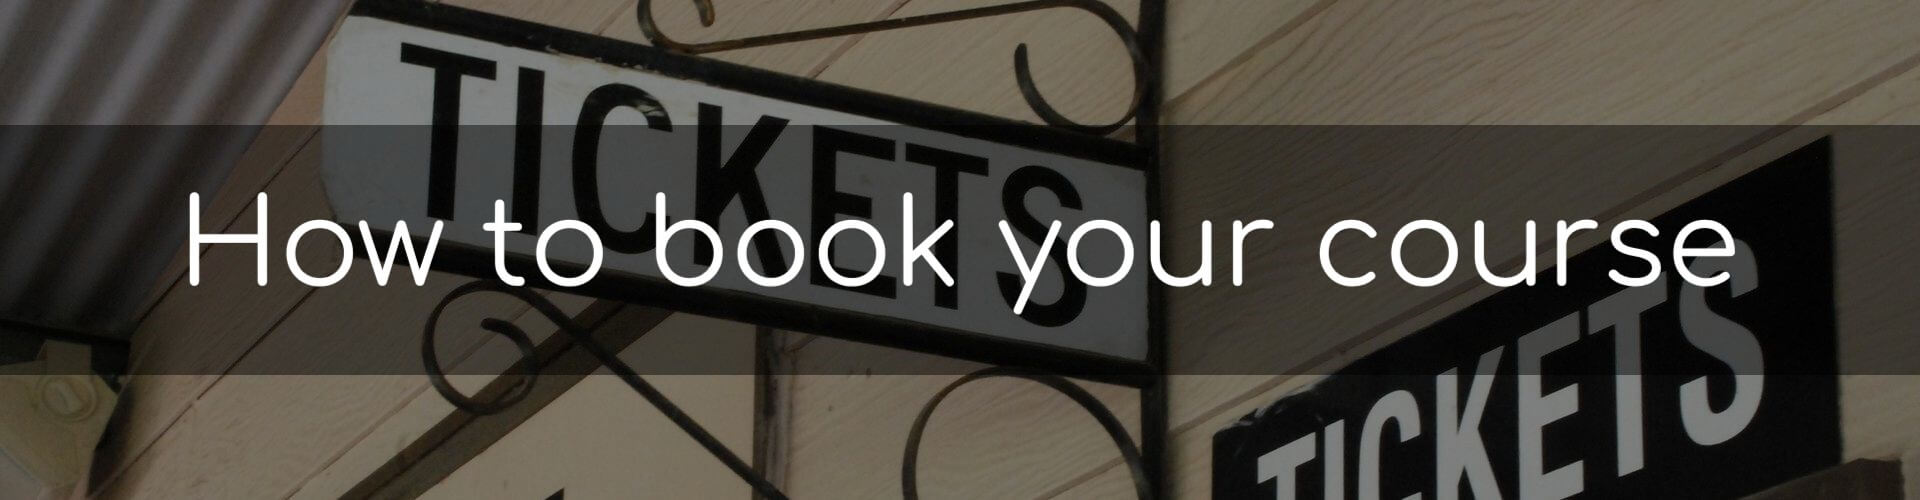 Book your course - Image of a ticket office sign